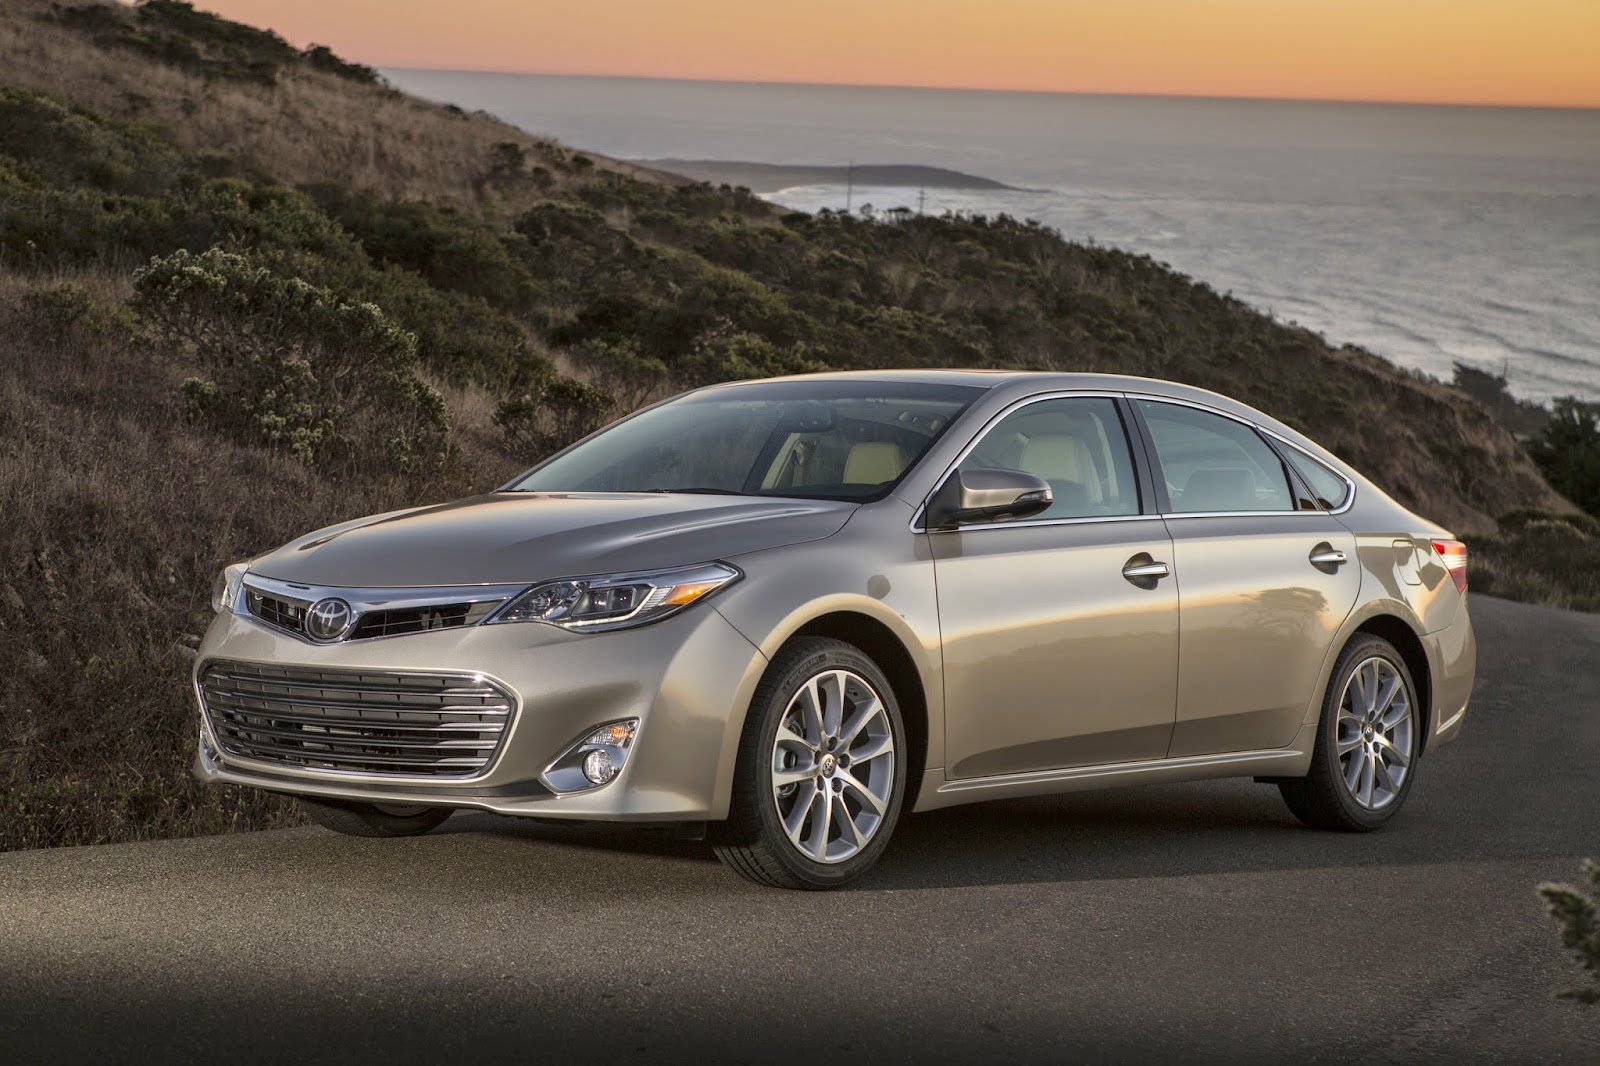 Front 3/4 view of the 2014 Toyota Avalon